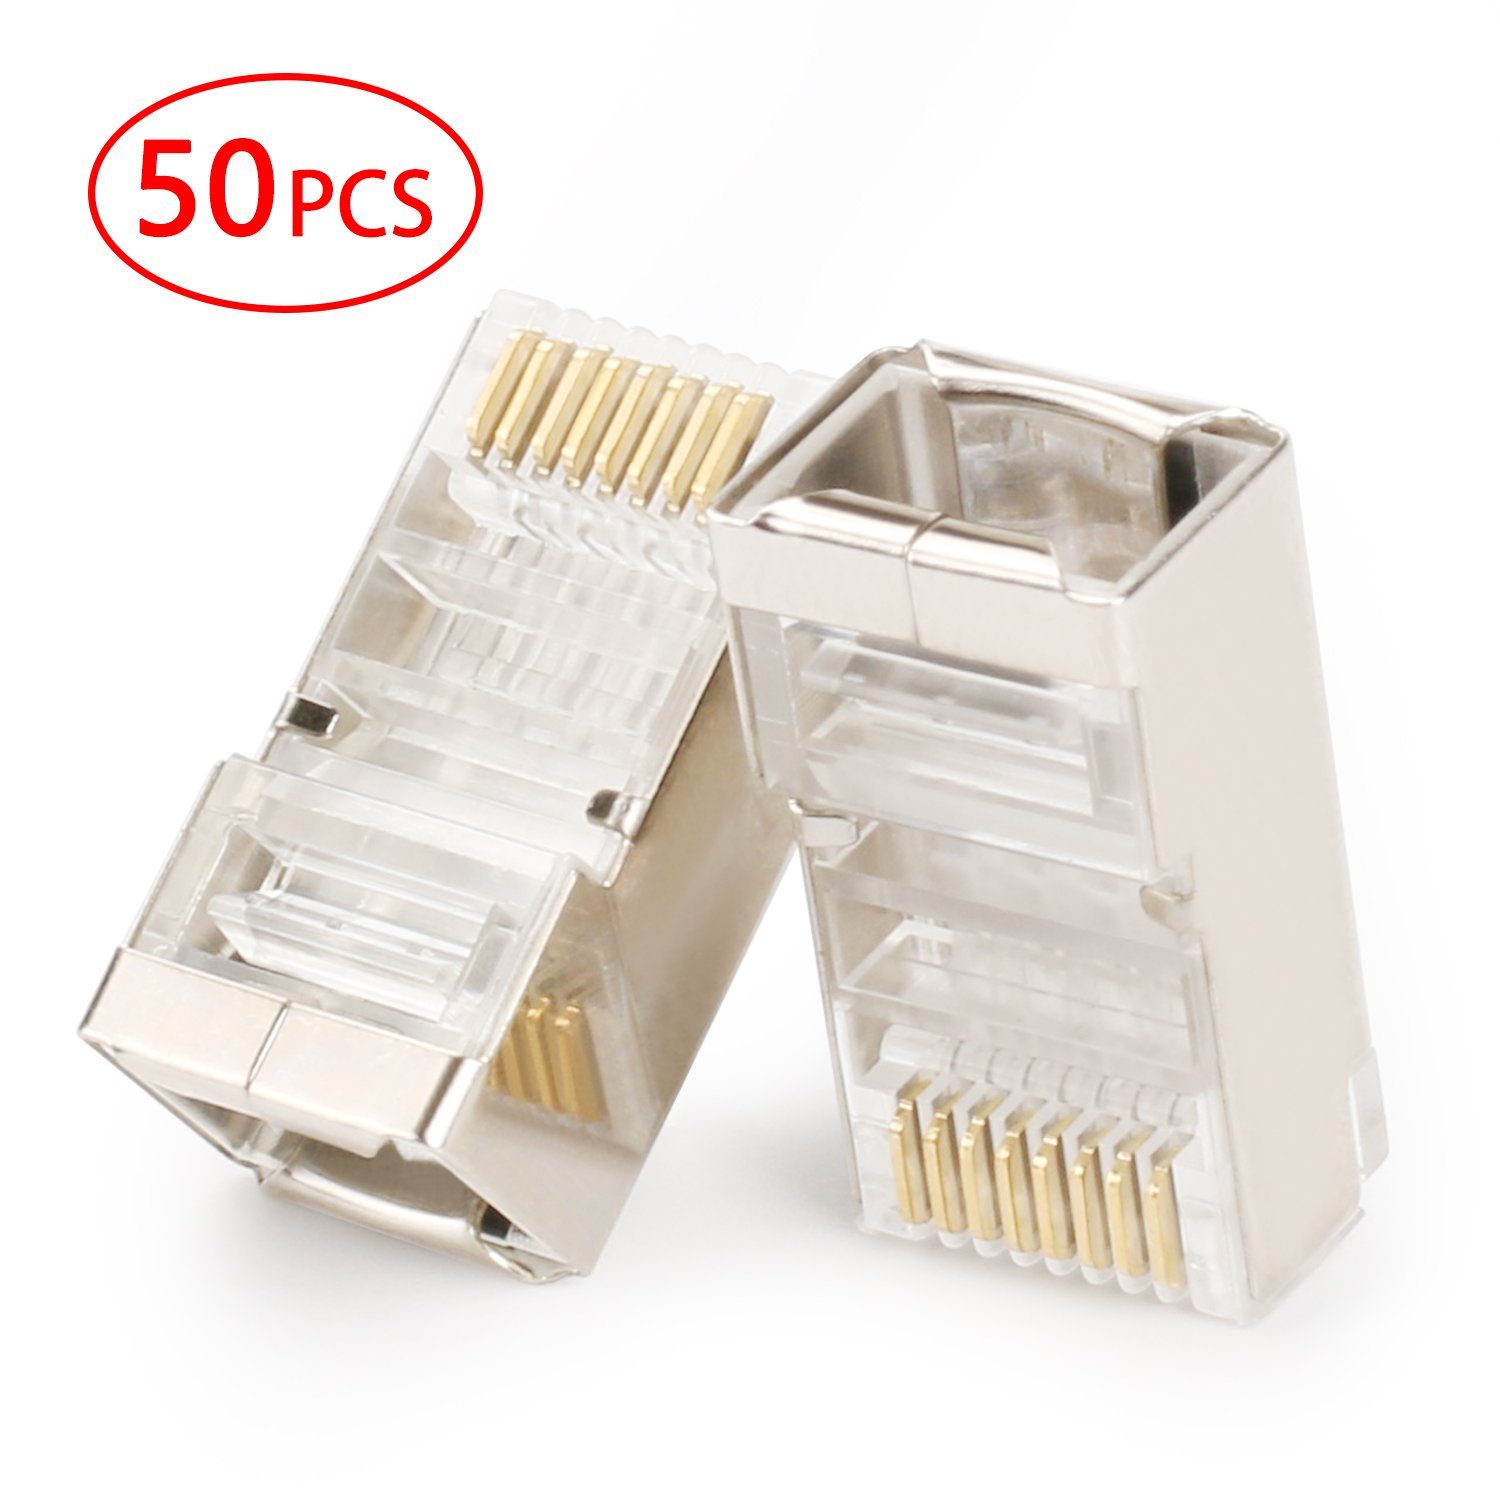 Postta Shielded Rj45 Cat5e Cat6 Crimp Connector 8p8c Stp Wiring Diagram For Gold Plated Ethernet Network Cable Plug 50 Pieces Home Audio Theater